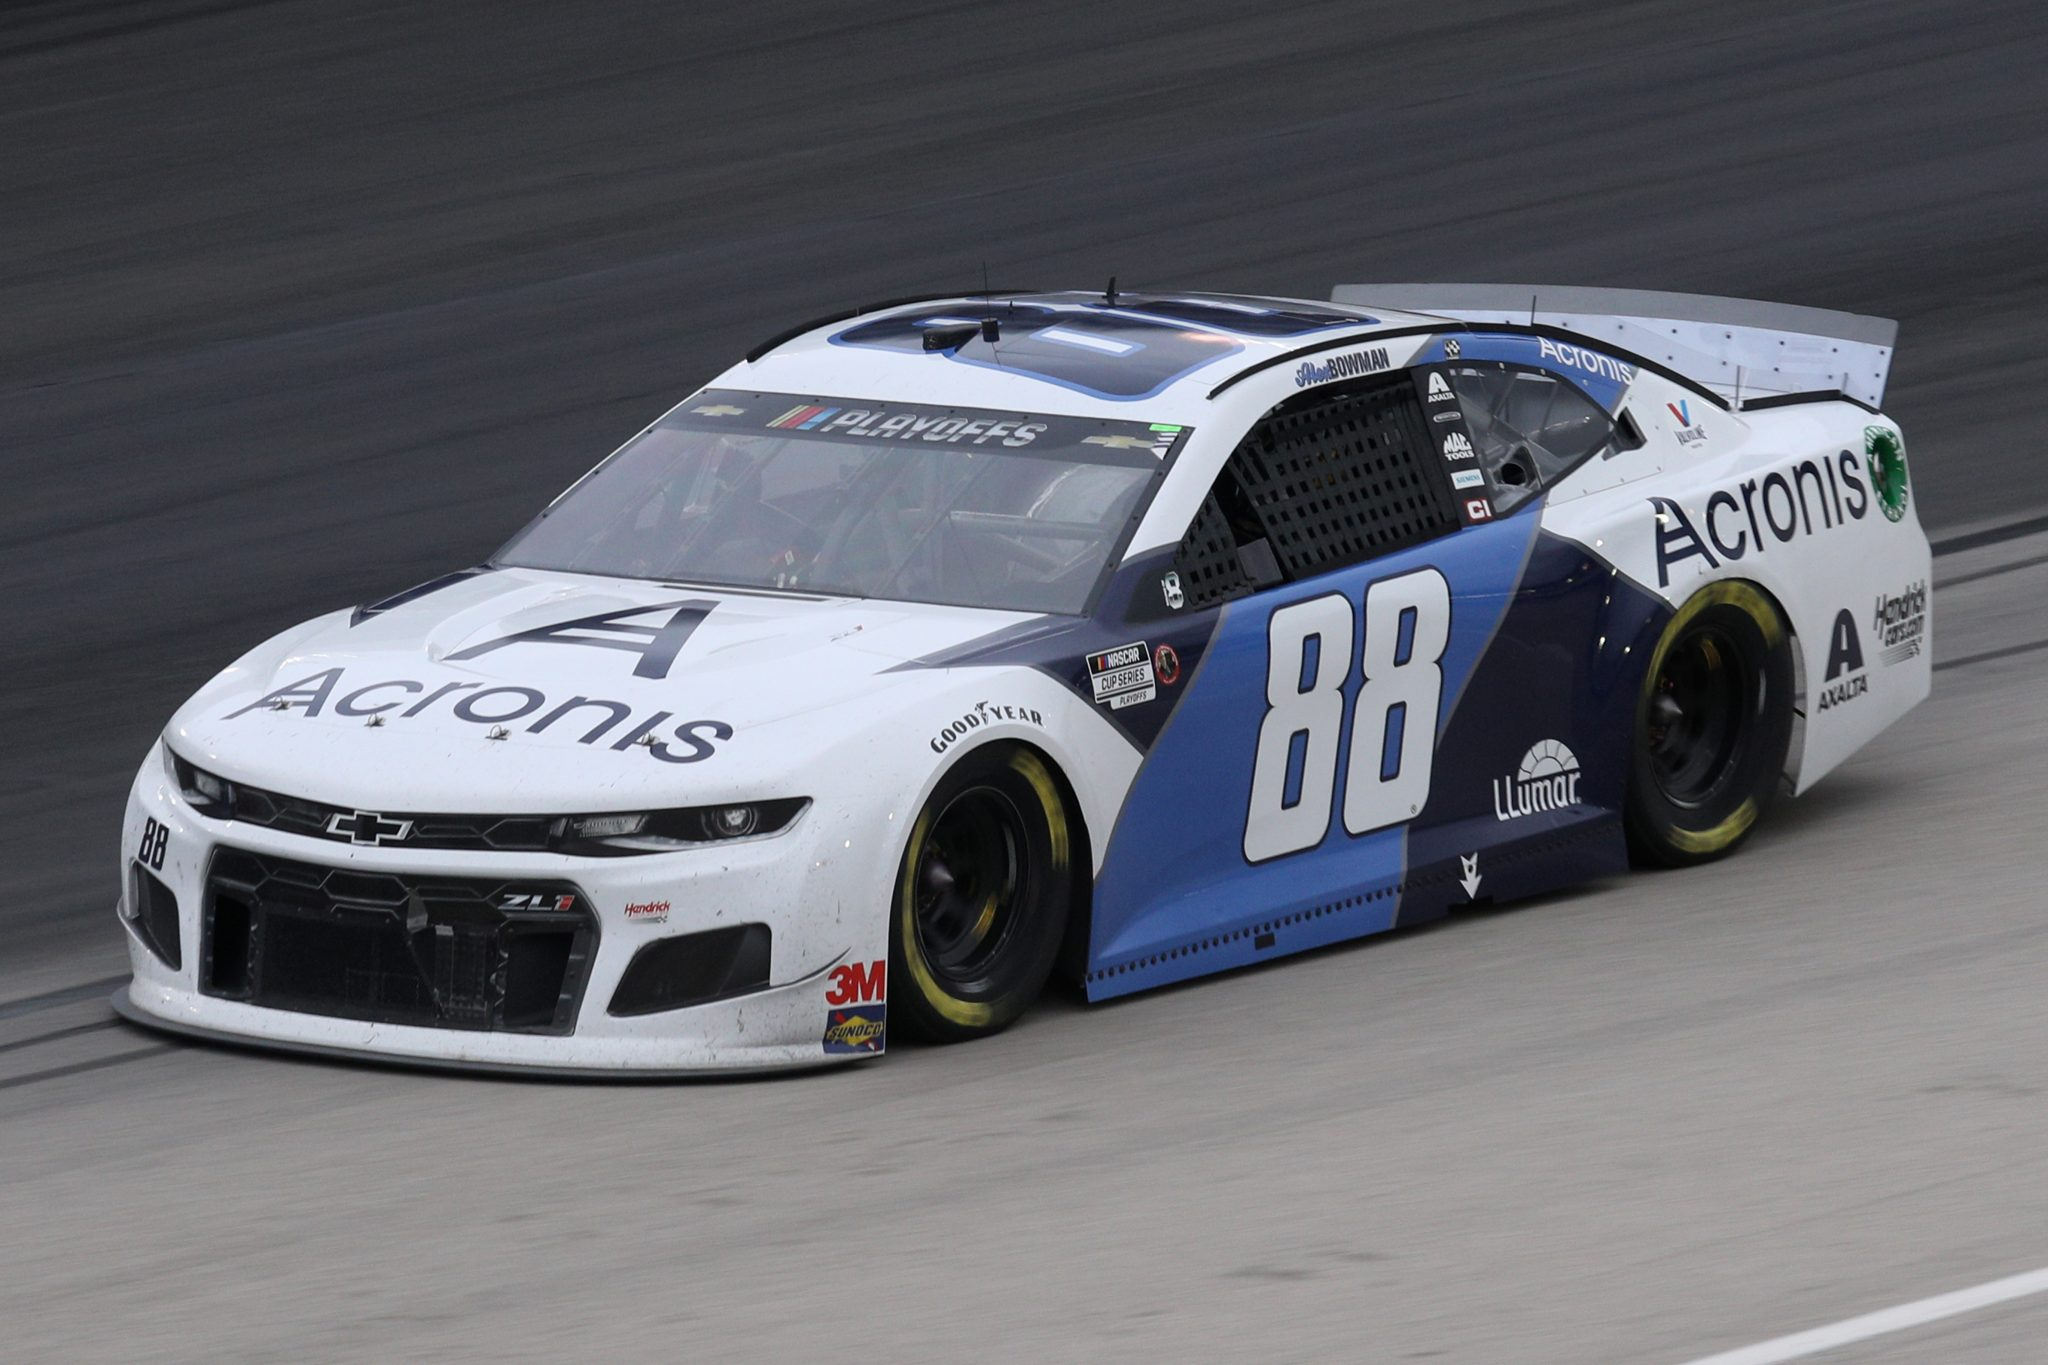 FORT WORTH, TEXAS - OCTOBER 28: Alex Bowman, driver of the #88 Acronis Chevrolet, drives during the NASCAR Cup Series Autotrader EchoPark Automotive 500 at Texas Motor Speedway on October 28, 2020 in Fort Worth, Texas. (Photo by Chris Graythen/Getty Images) | Getty Images